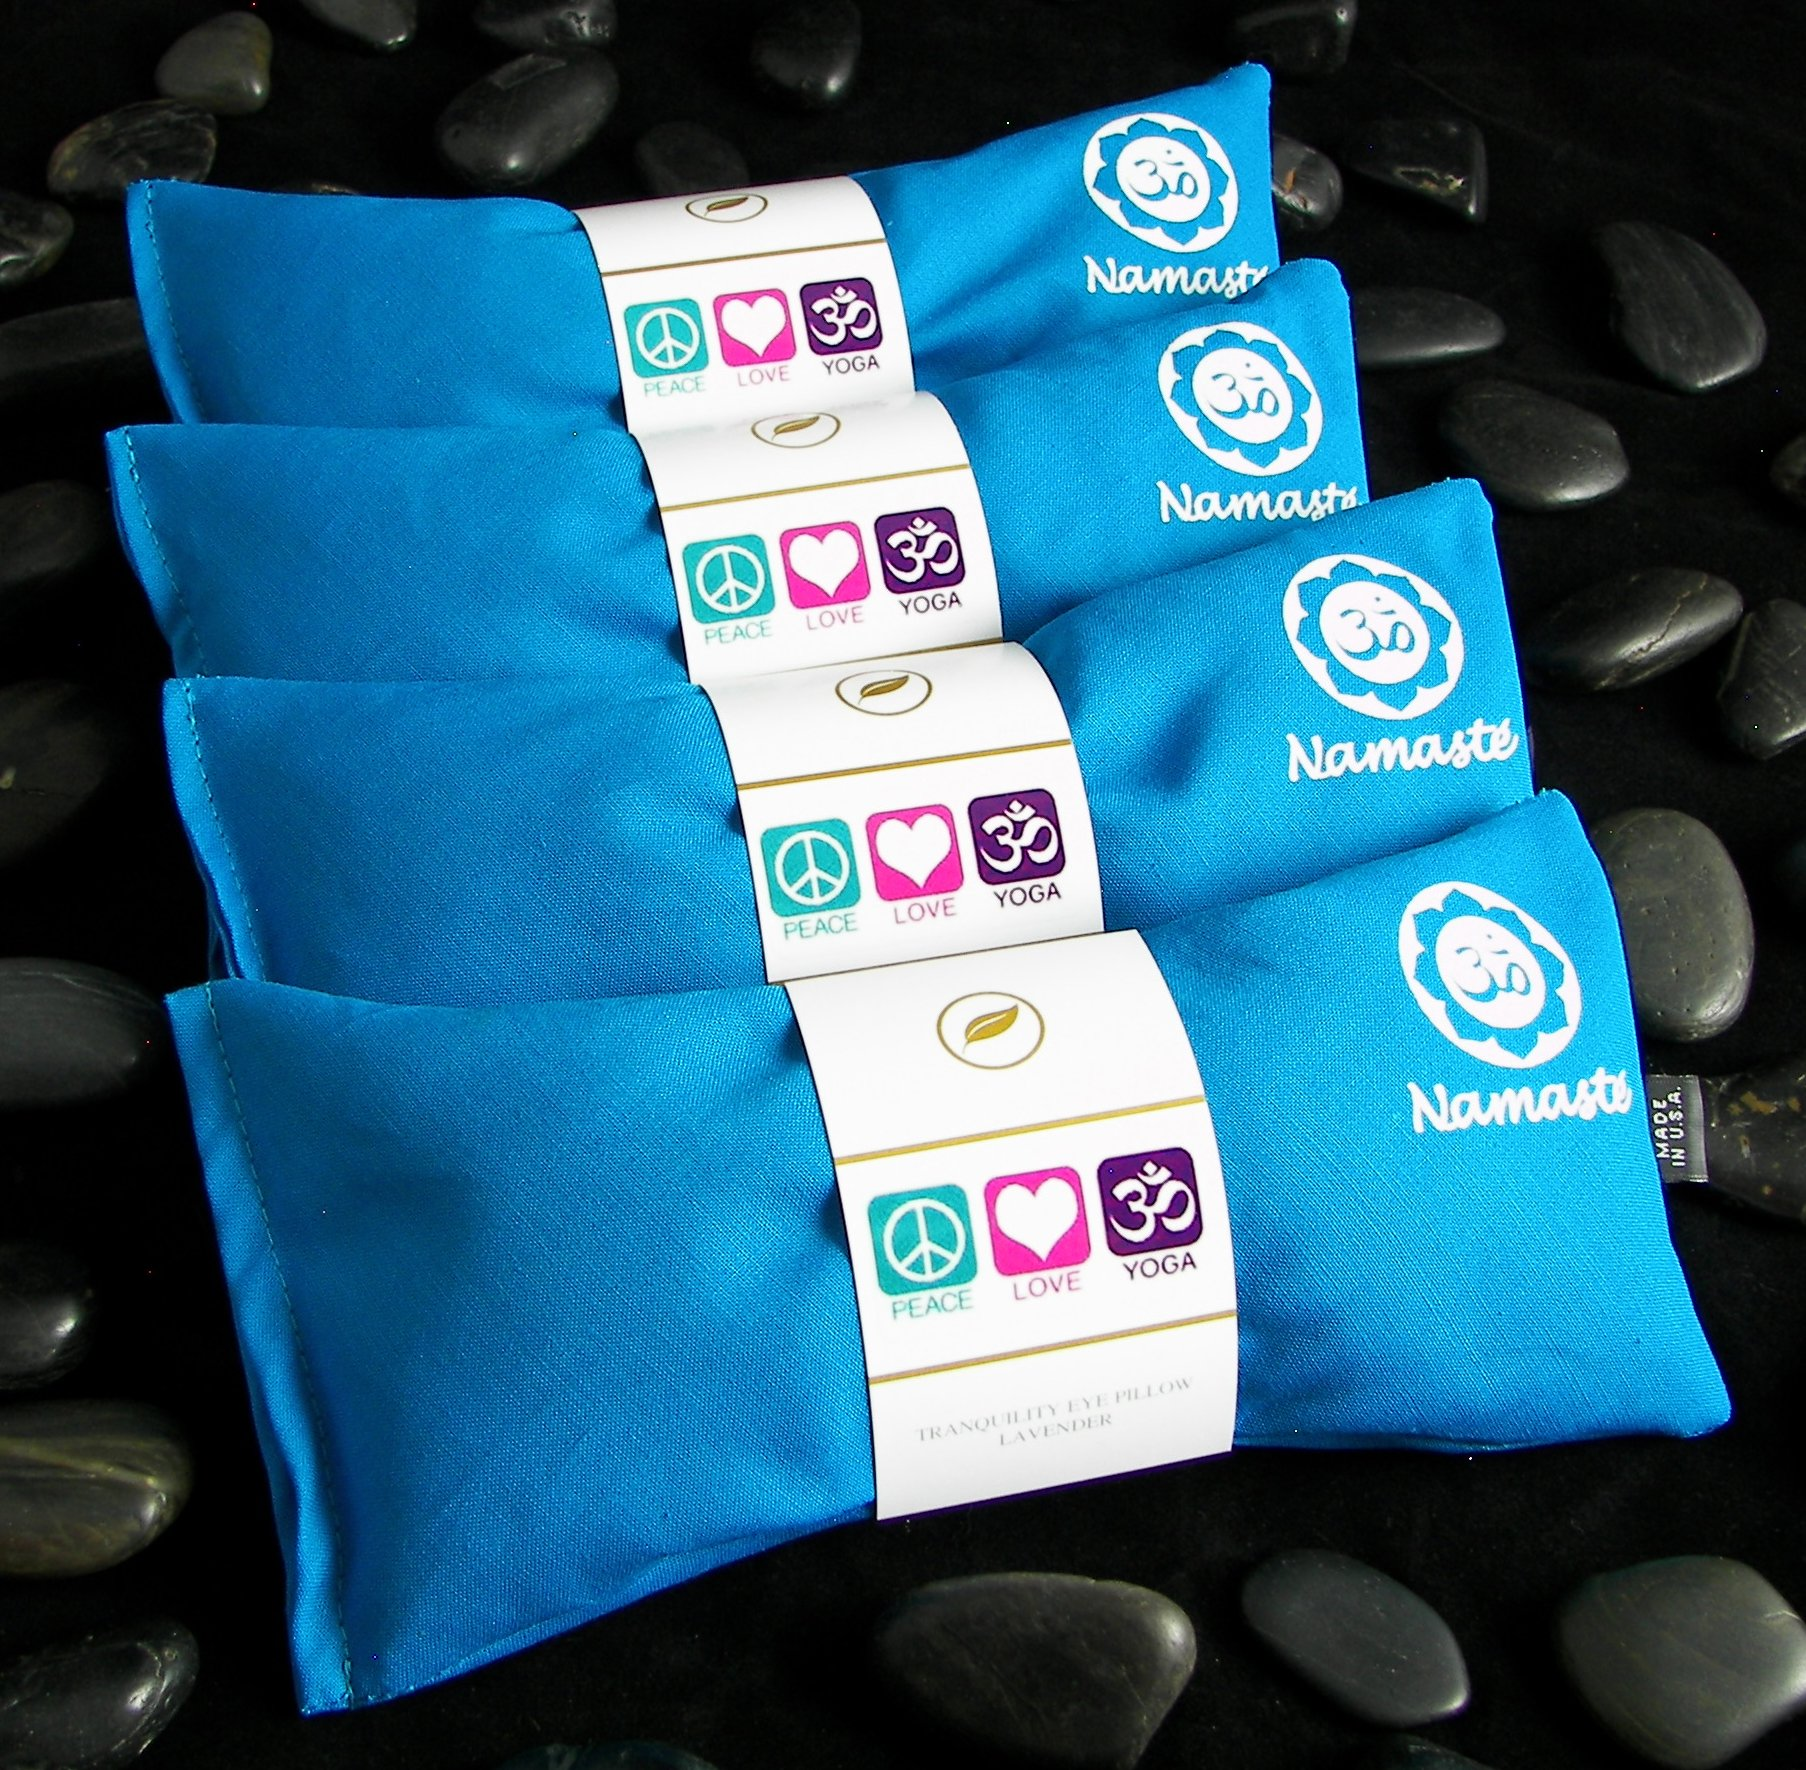 Happy Wraps Namaste Yoga Eye Pillows - Lavender Eye Pillows for Yoga - Weighted Aromatherapy Eye Pillow Mask for Yoga - Stress Relief and Relaxation Gifts Hot Cold Therapy - Set of 4 - Turquoise by Happy Wraps